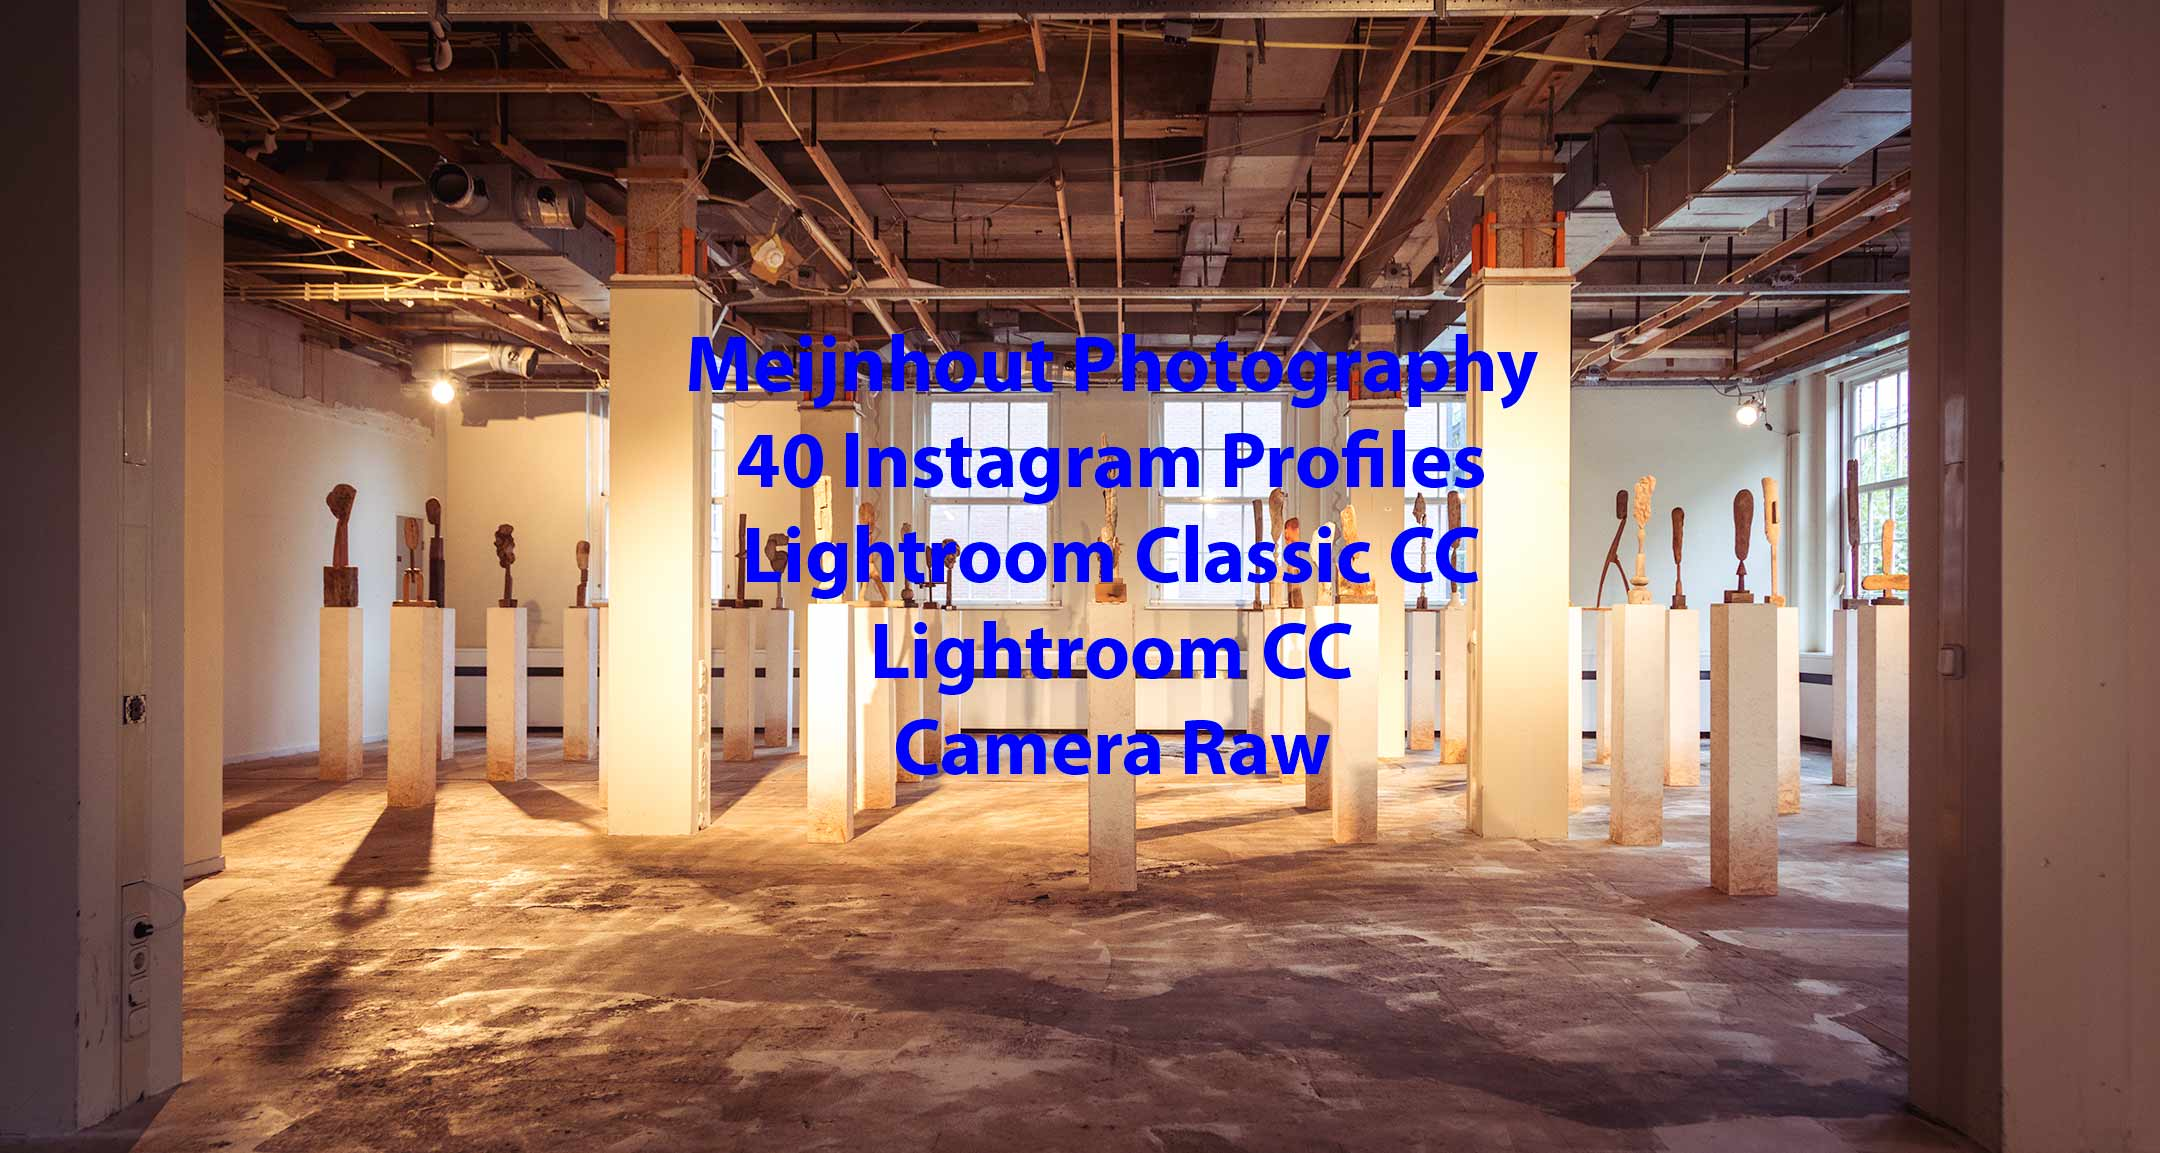 3 FREE High Quality Instagram PROFILES for Adobe Lightroom